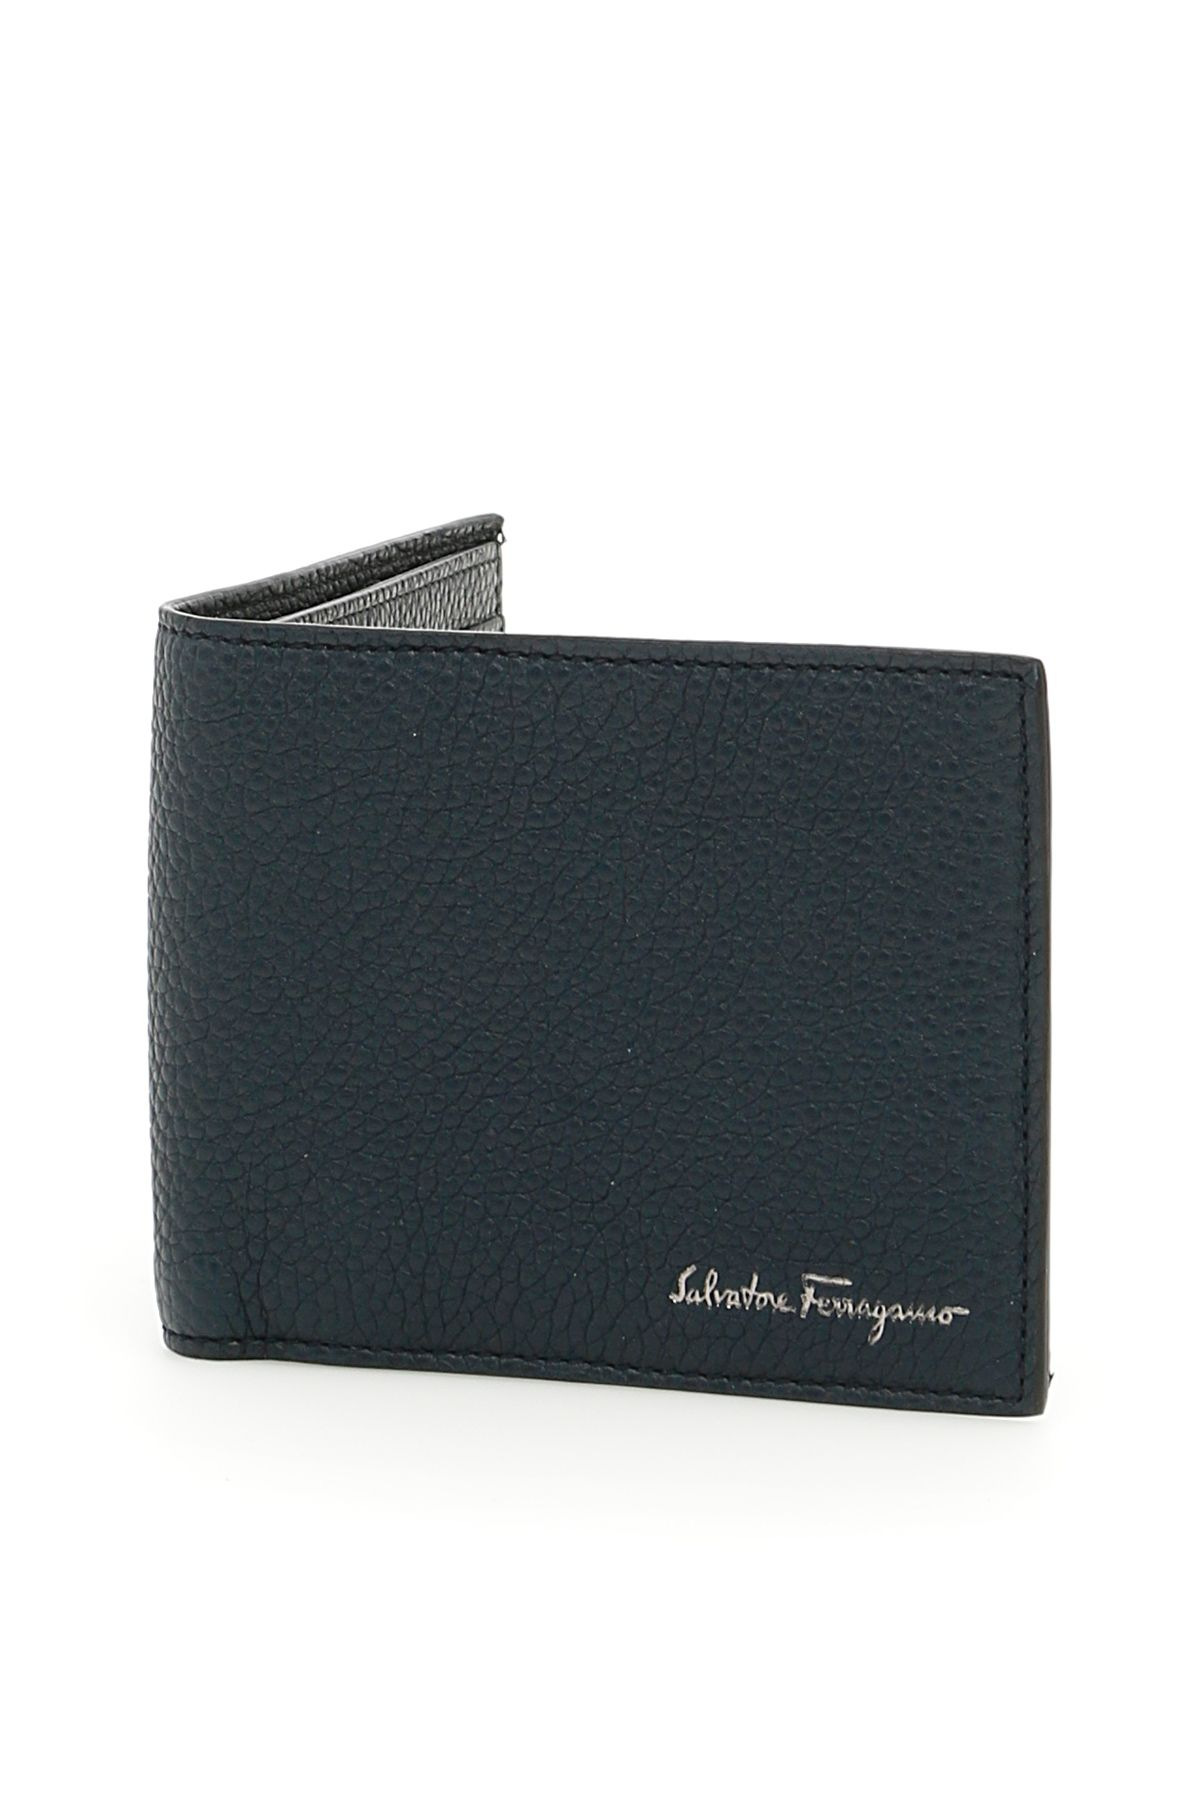 Salvatore Ferragamo Firenze Wallet